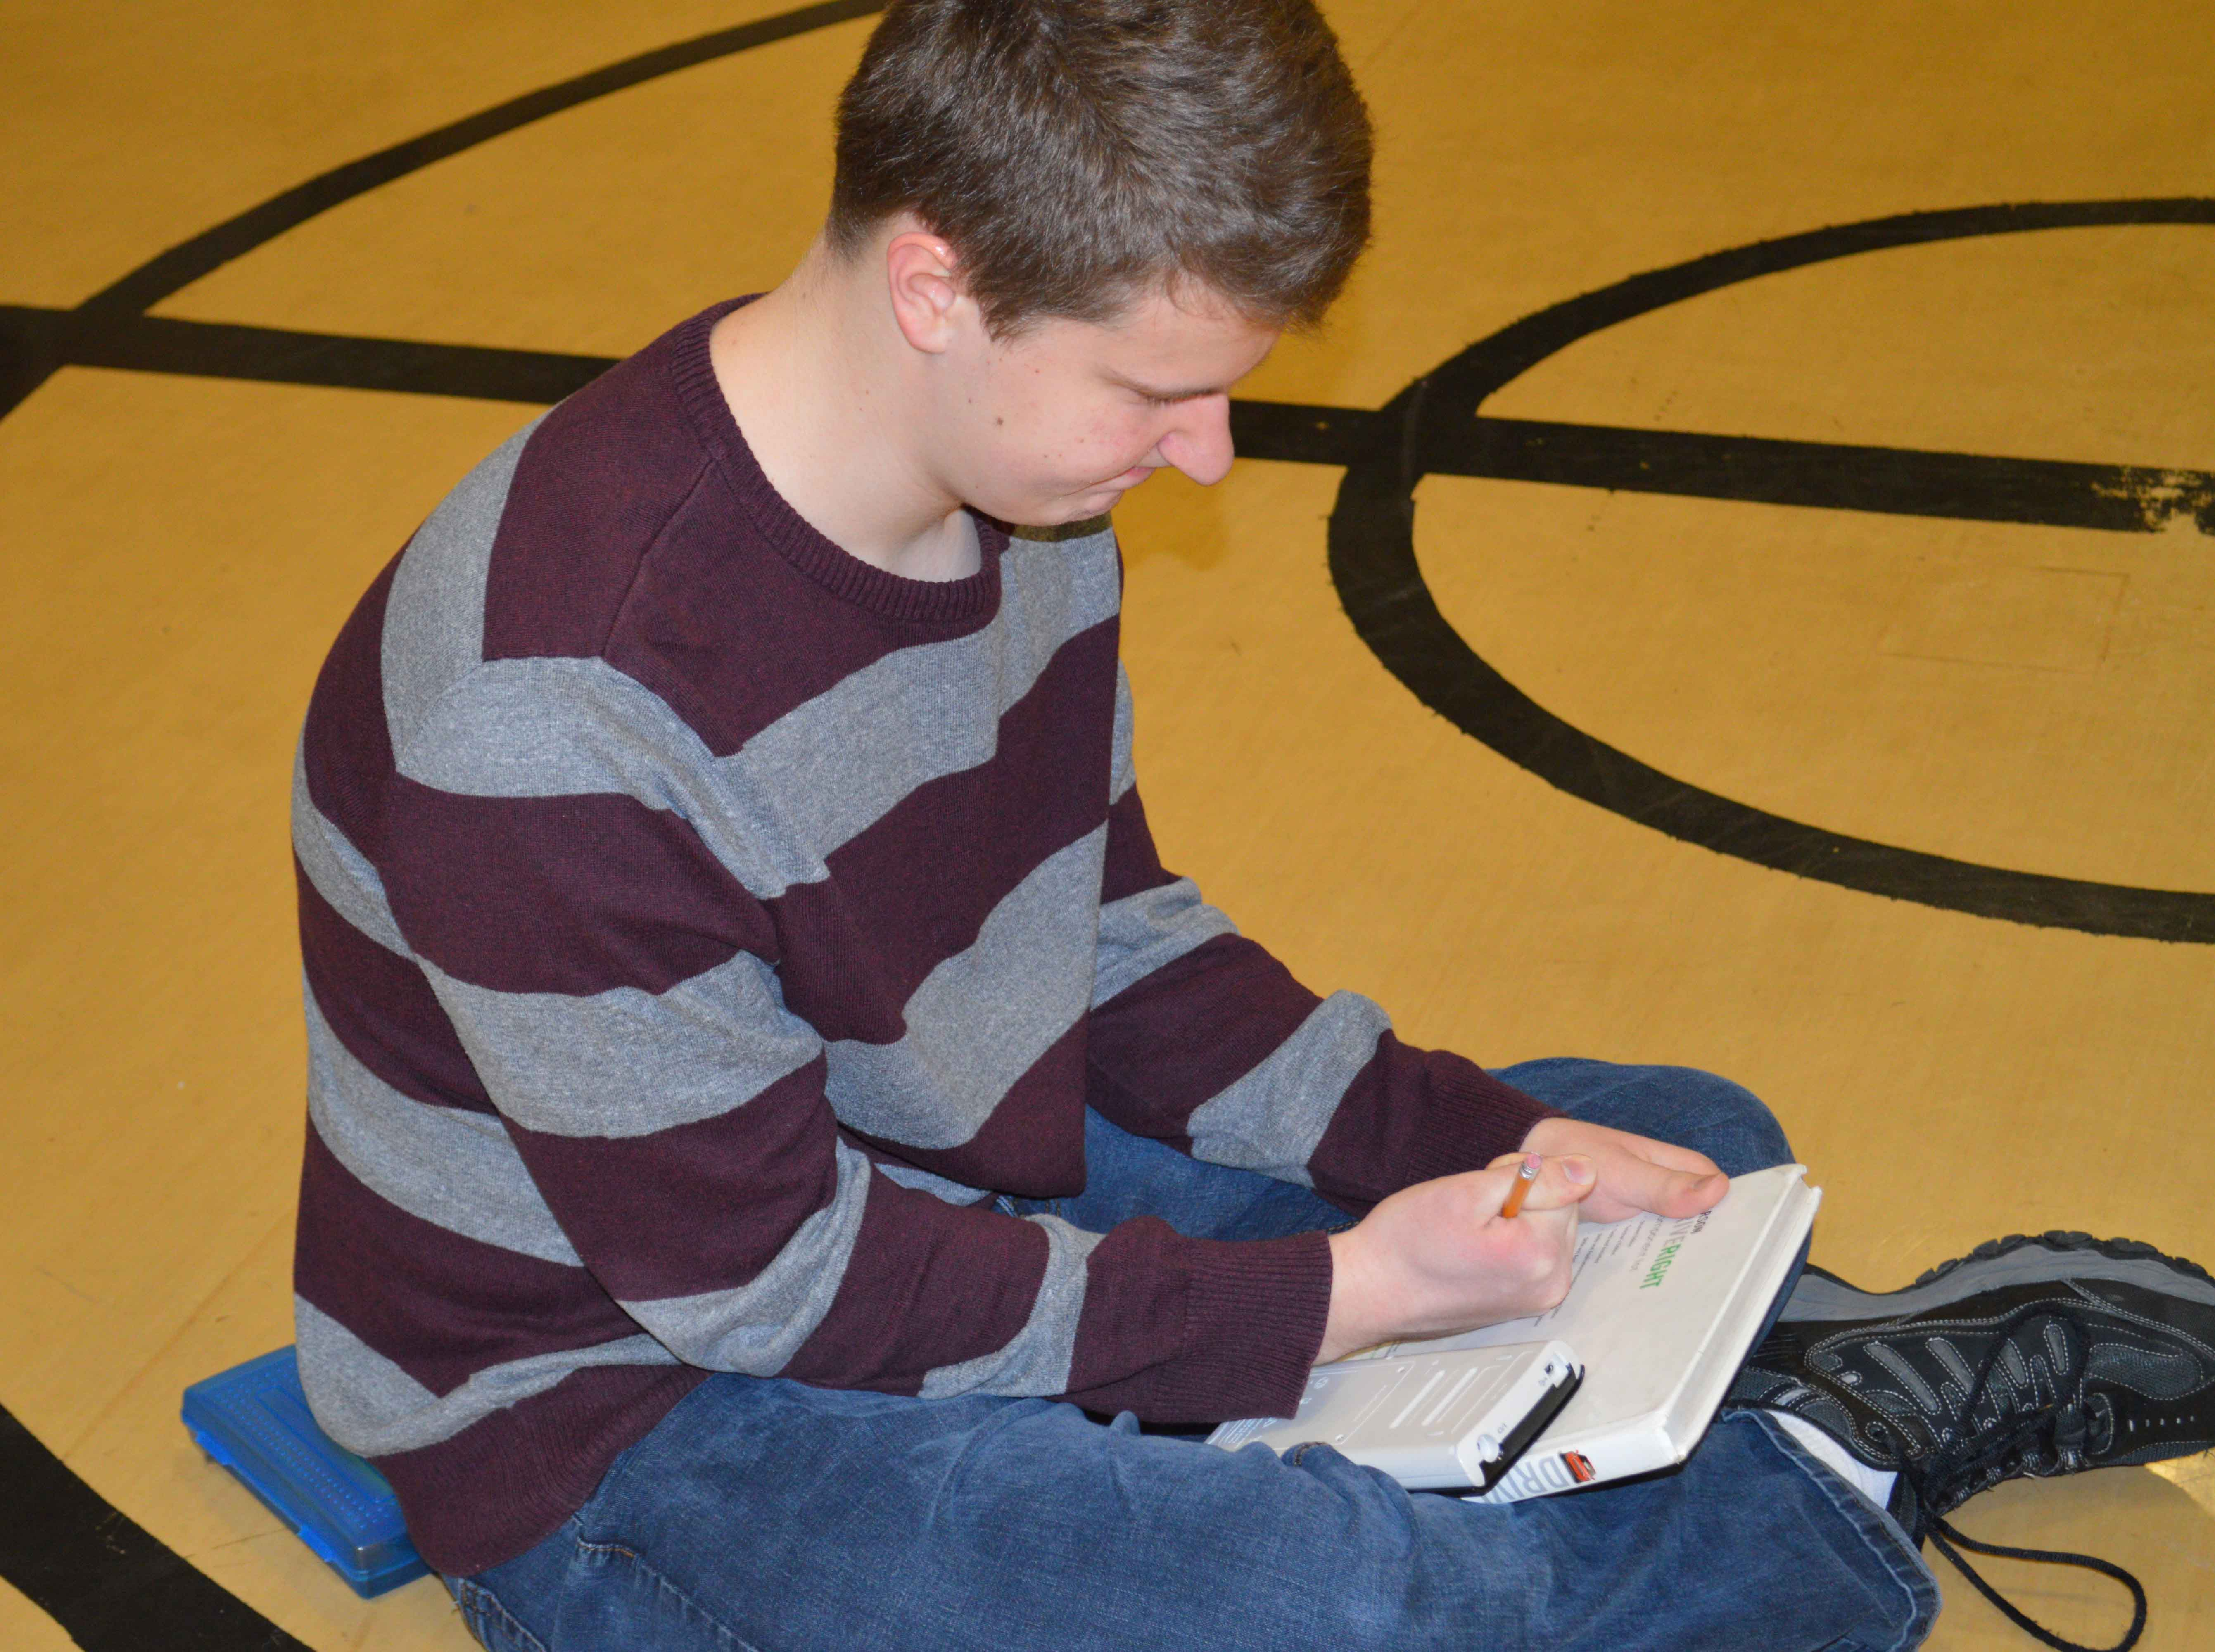 Students rush to do their homework while fulfilling physical education requirements.